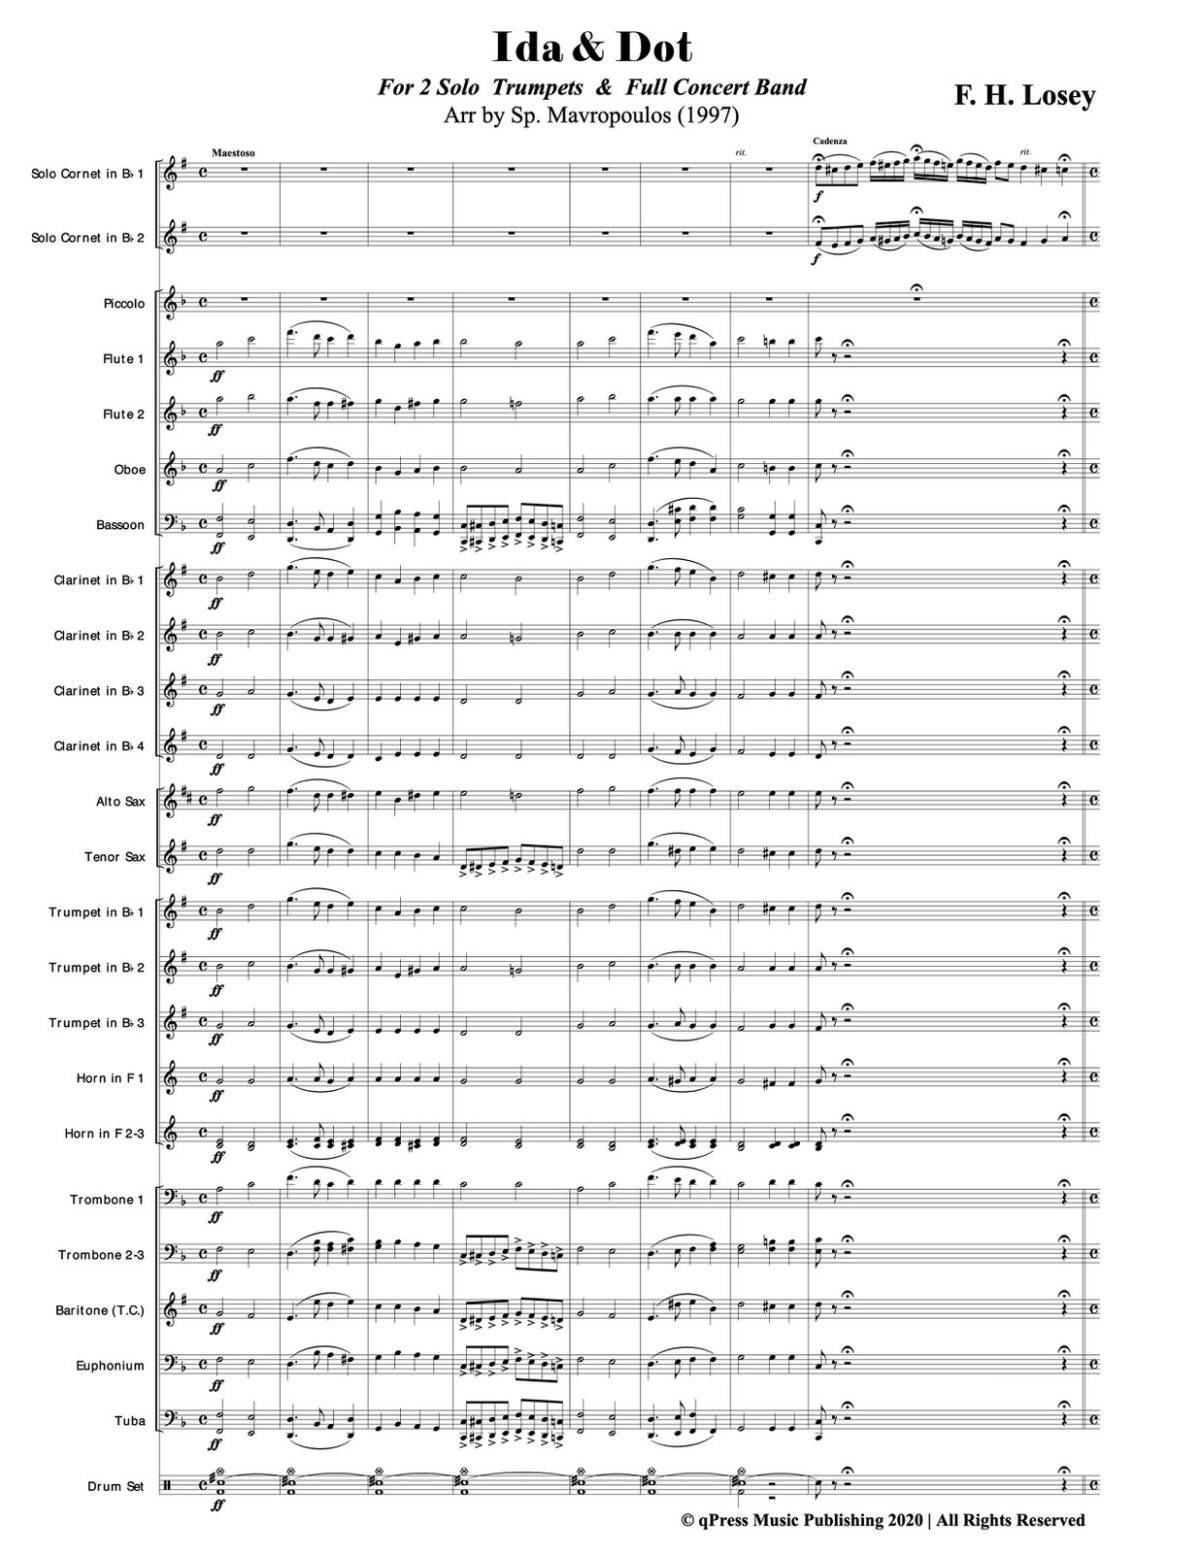 Losey, Ida & Dot for 2 Solo Trumpets and Band-p43